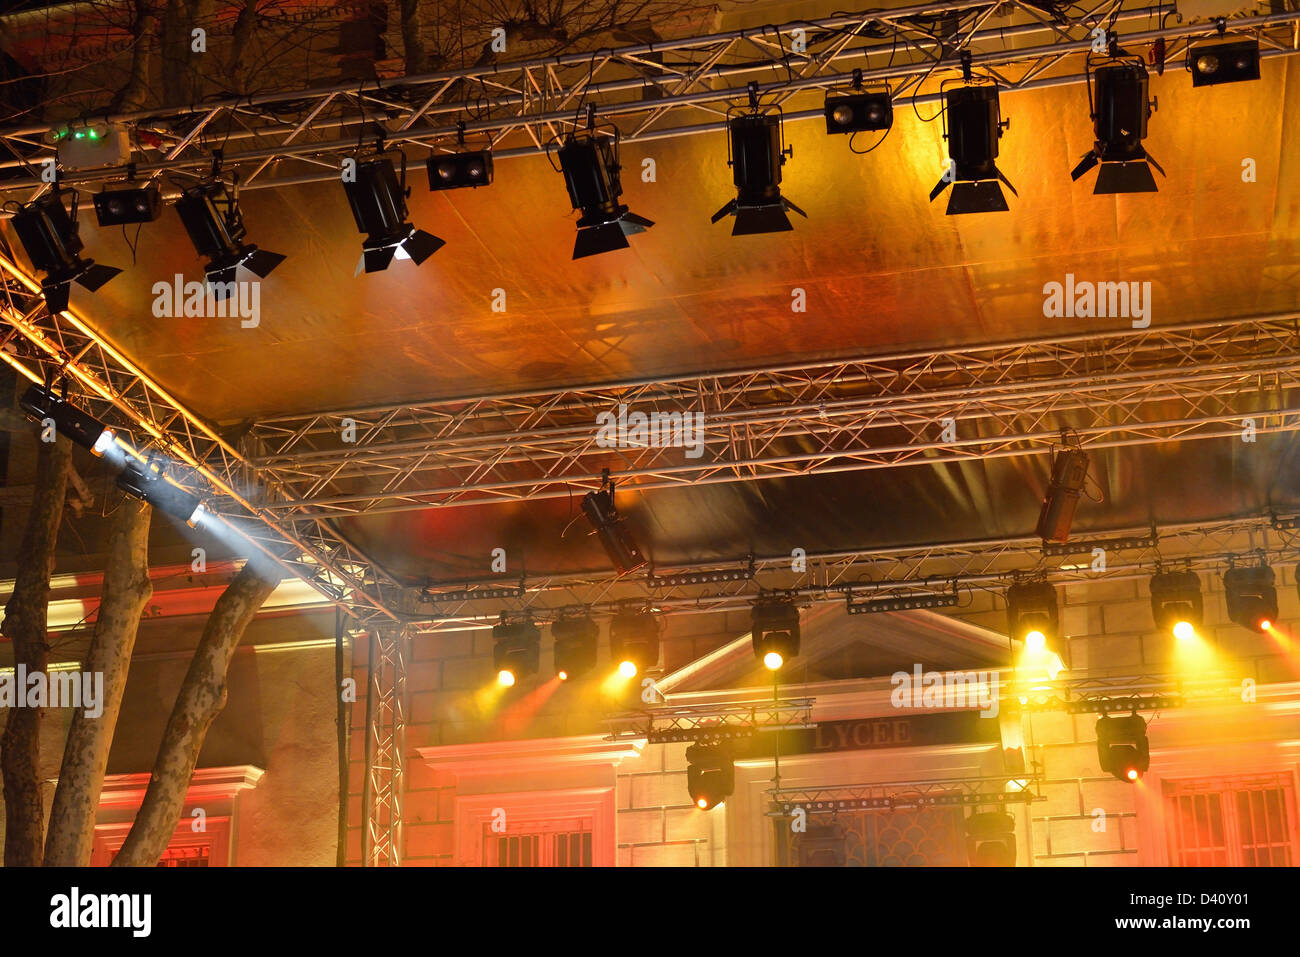 Colourful spotlights hanging on a rig on a batten above stage during a performance - Stock Image